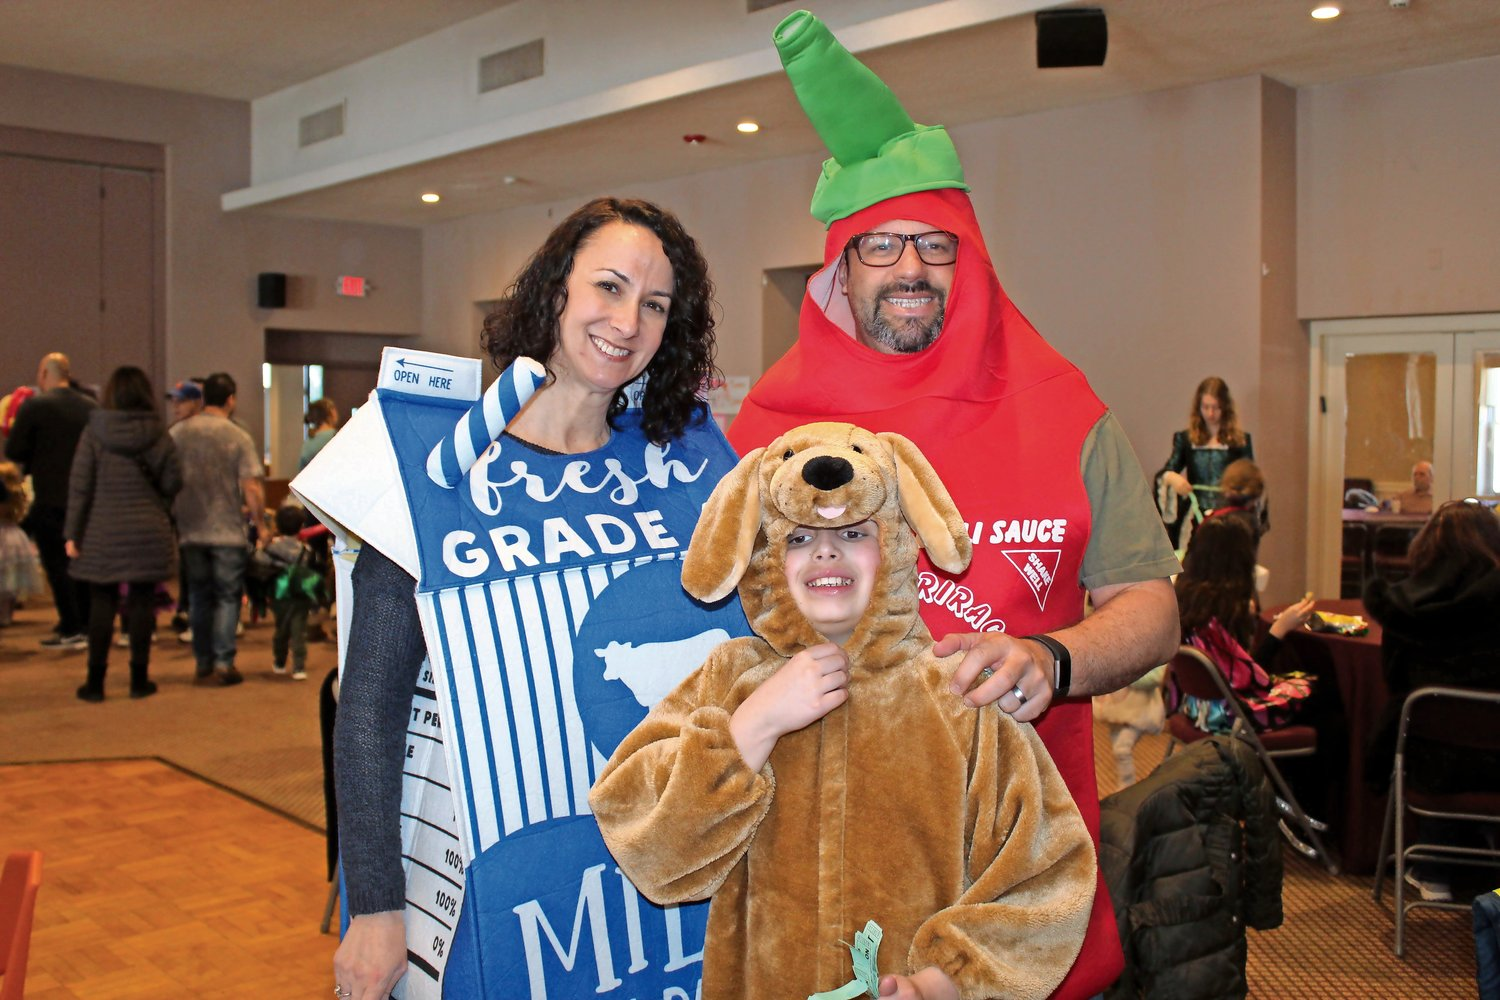 Debbie, Peter and Matthew Ilberg, of Glen Head, came prepared for the Purim carnival in silly costumes.